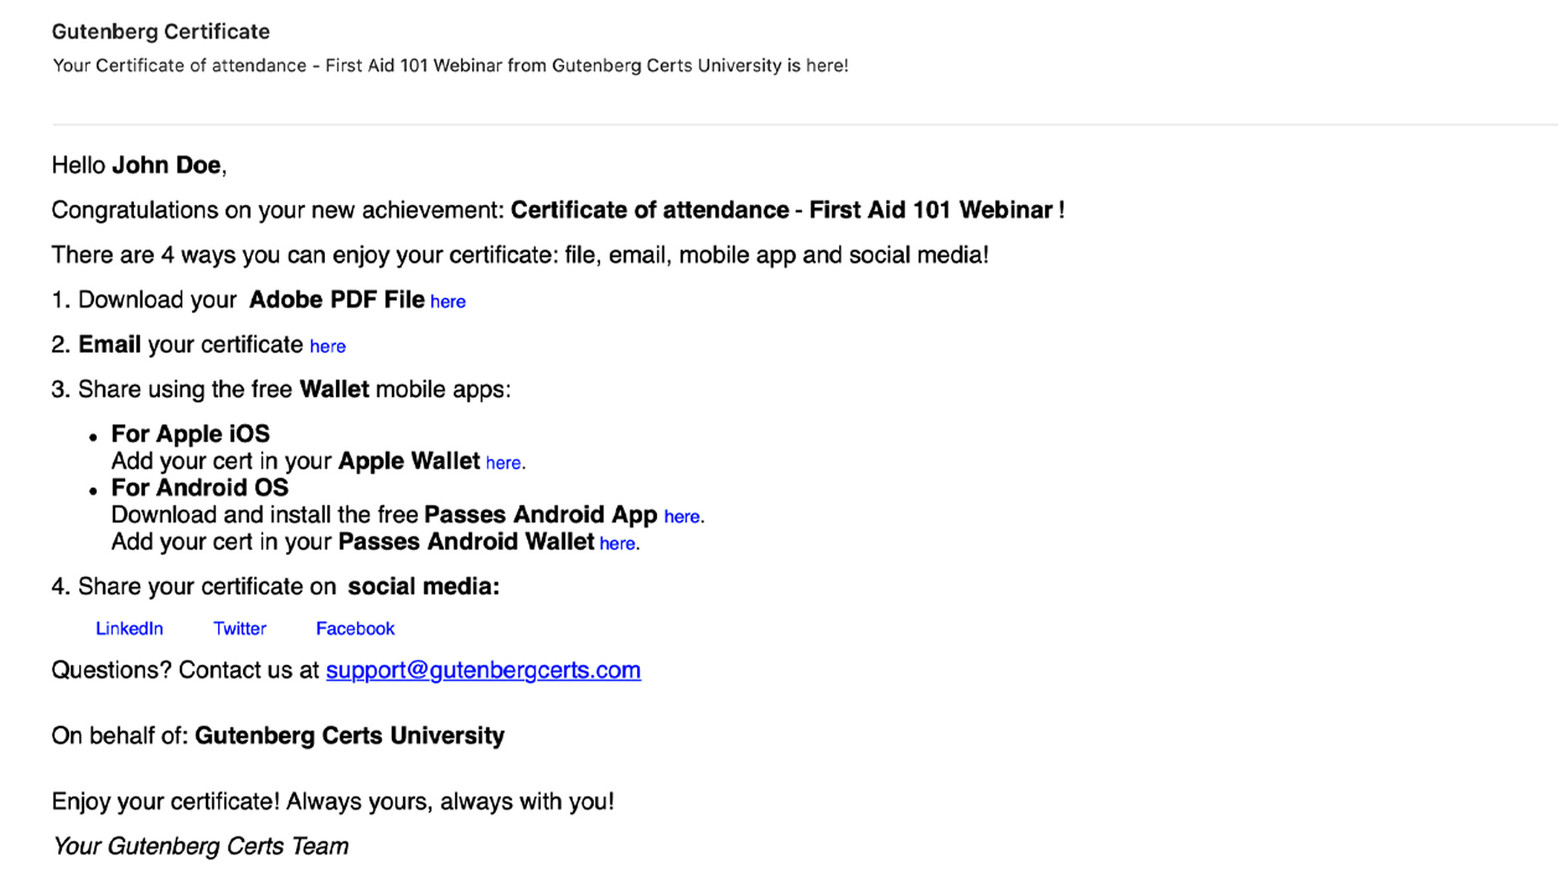 Within minutes, Recipients receive an email notification with download and share instructions.